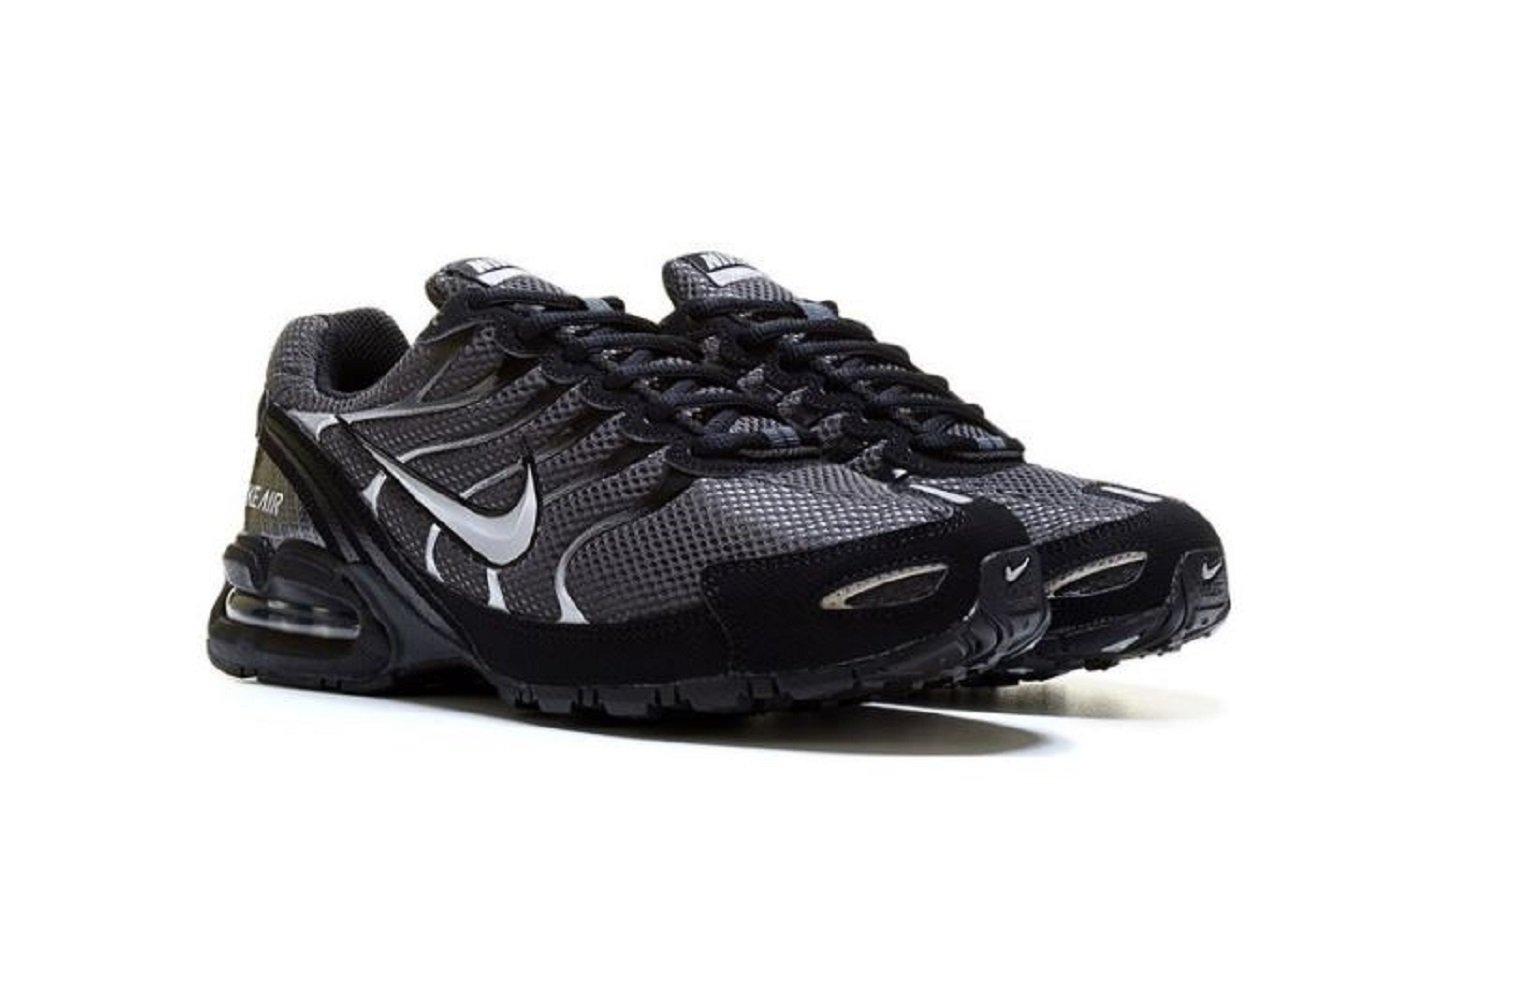 78565a4b6257f Galleon - Nike Men s Air Max Torch 4 Running Shoe Anthracite Metallic  Silver Black Size 11.5 M US